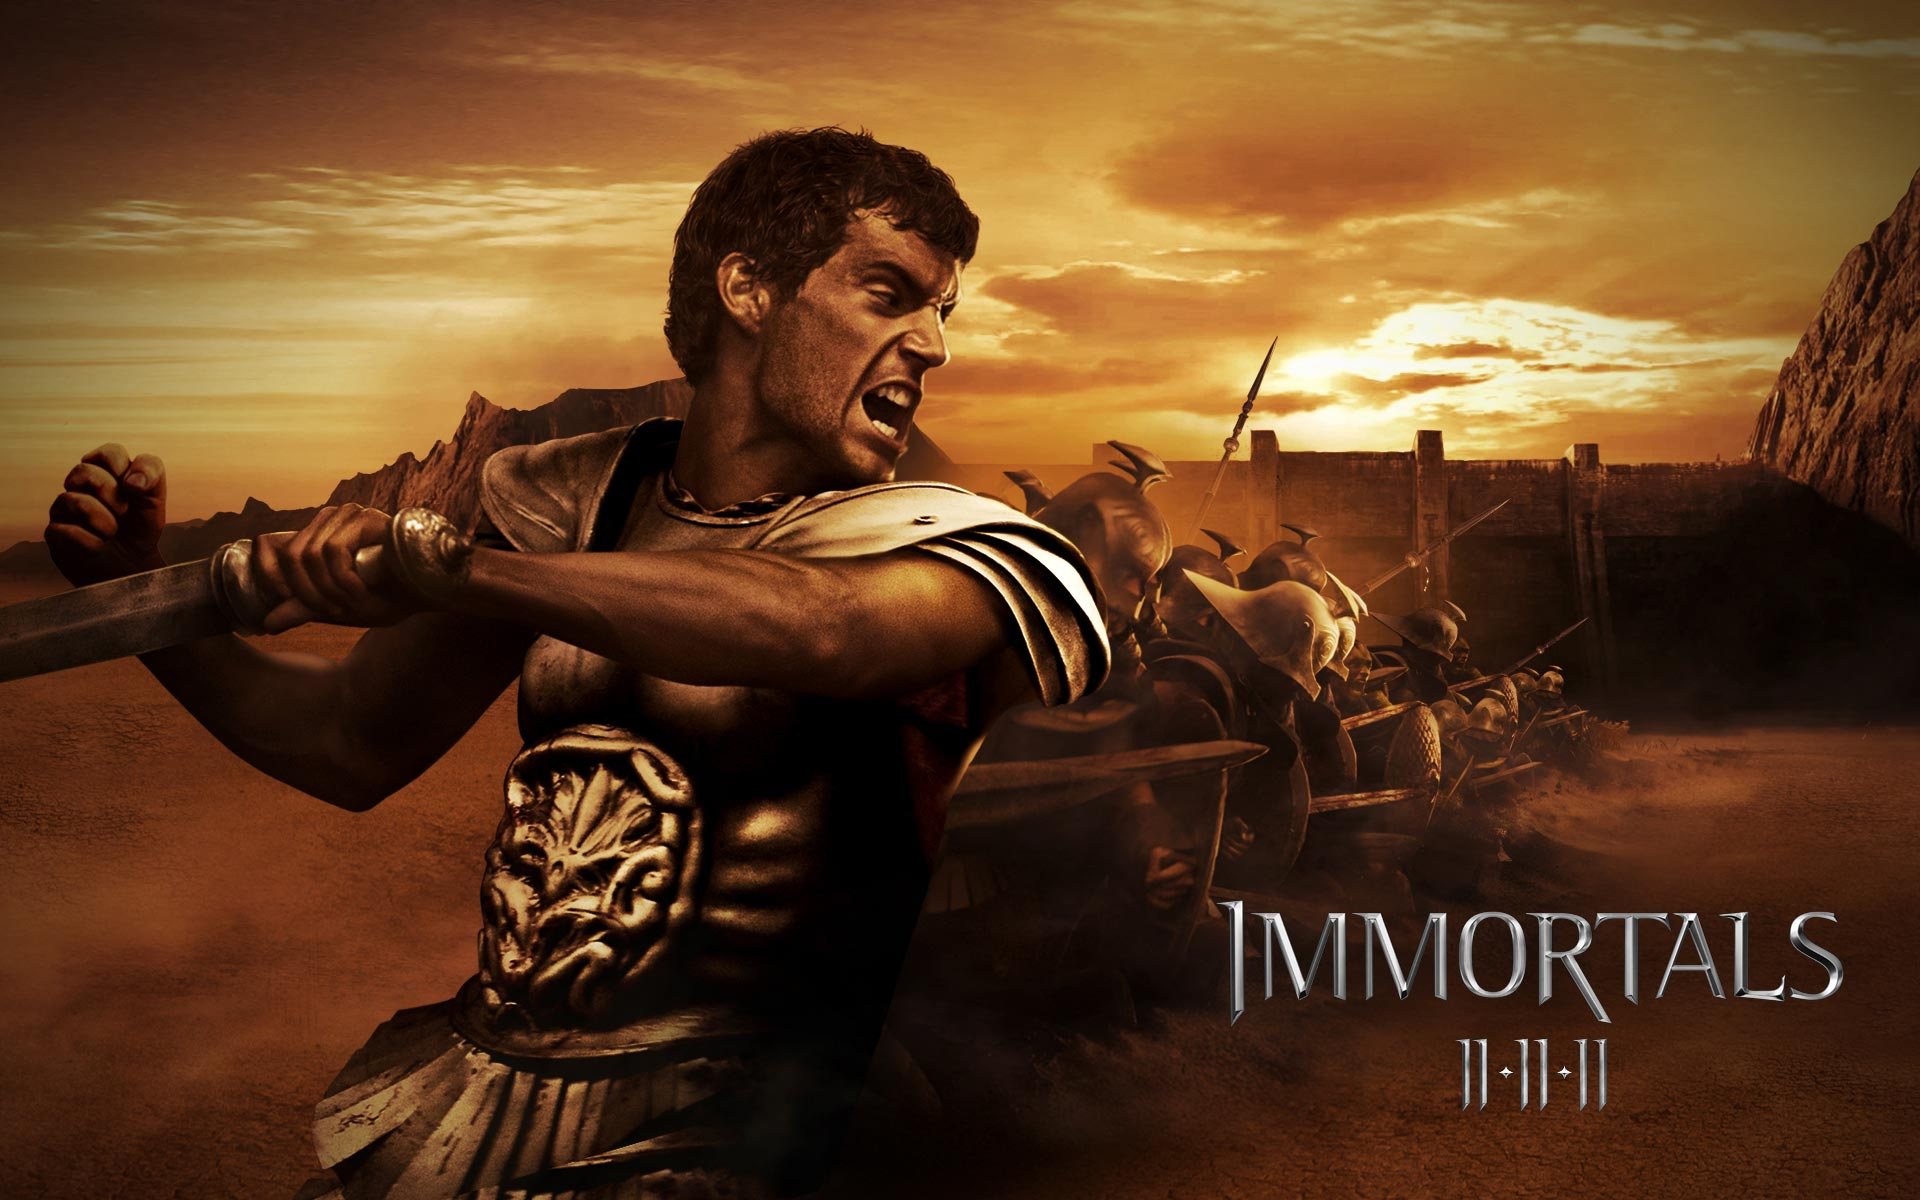 Weapons & Armor of the Ancient World: The Immortal David Wenham